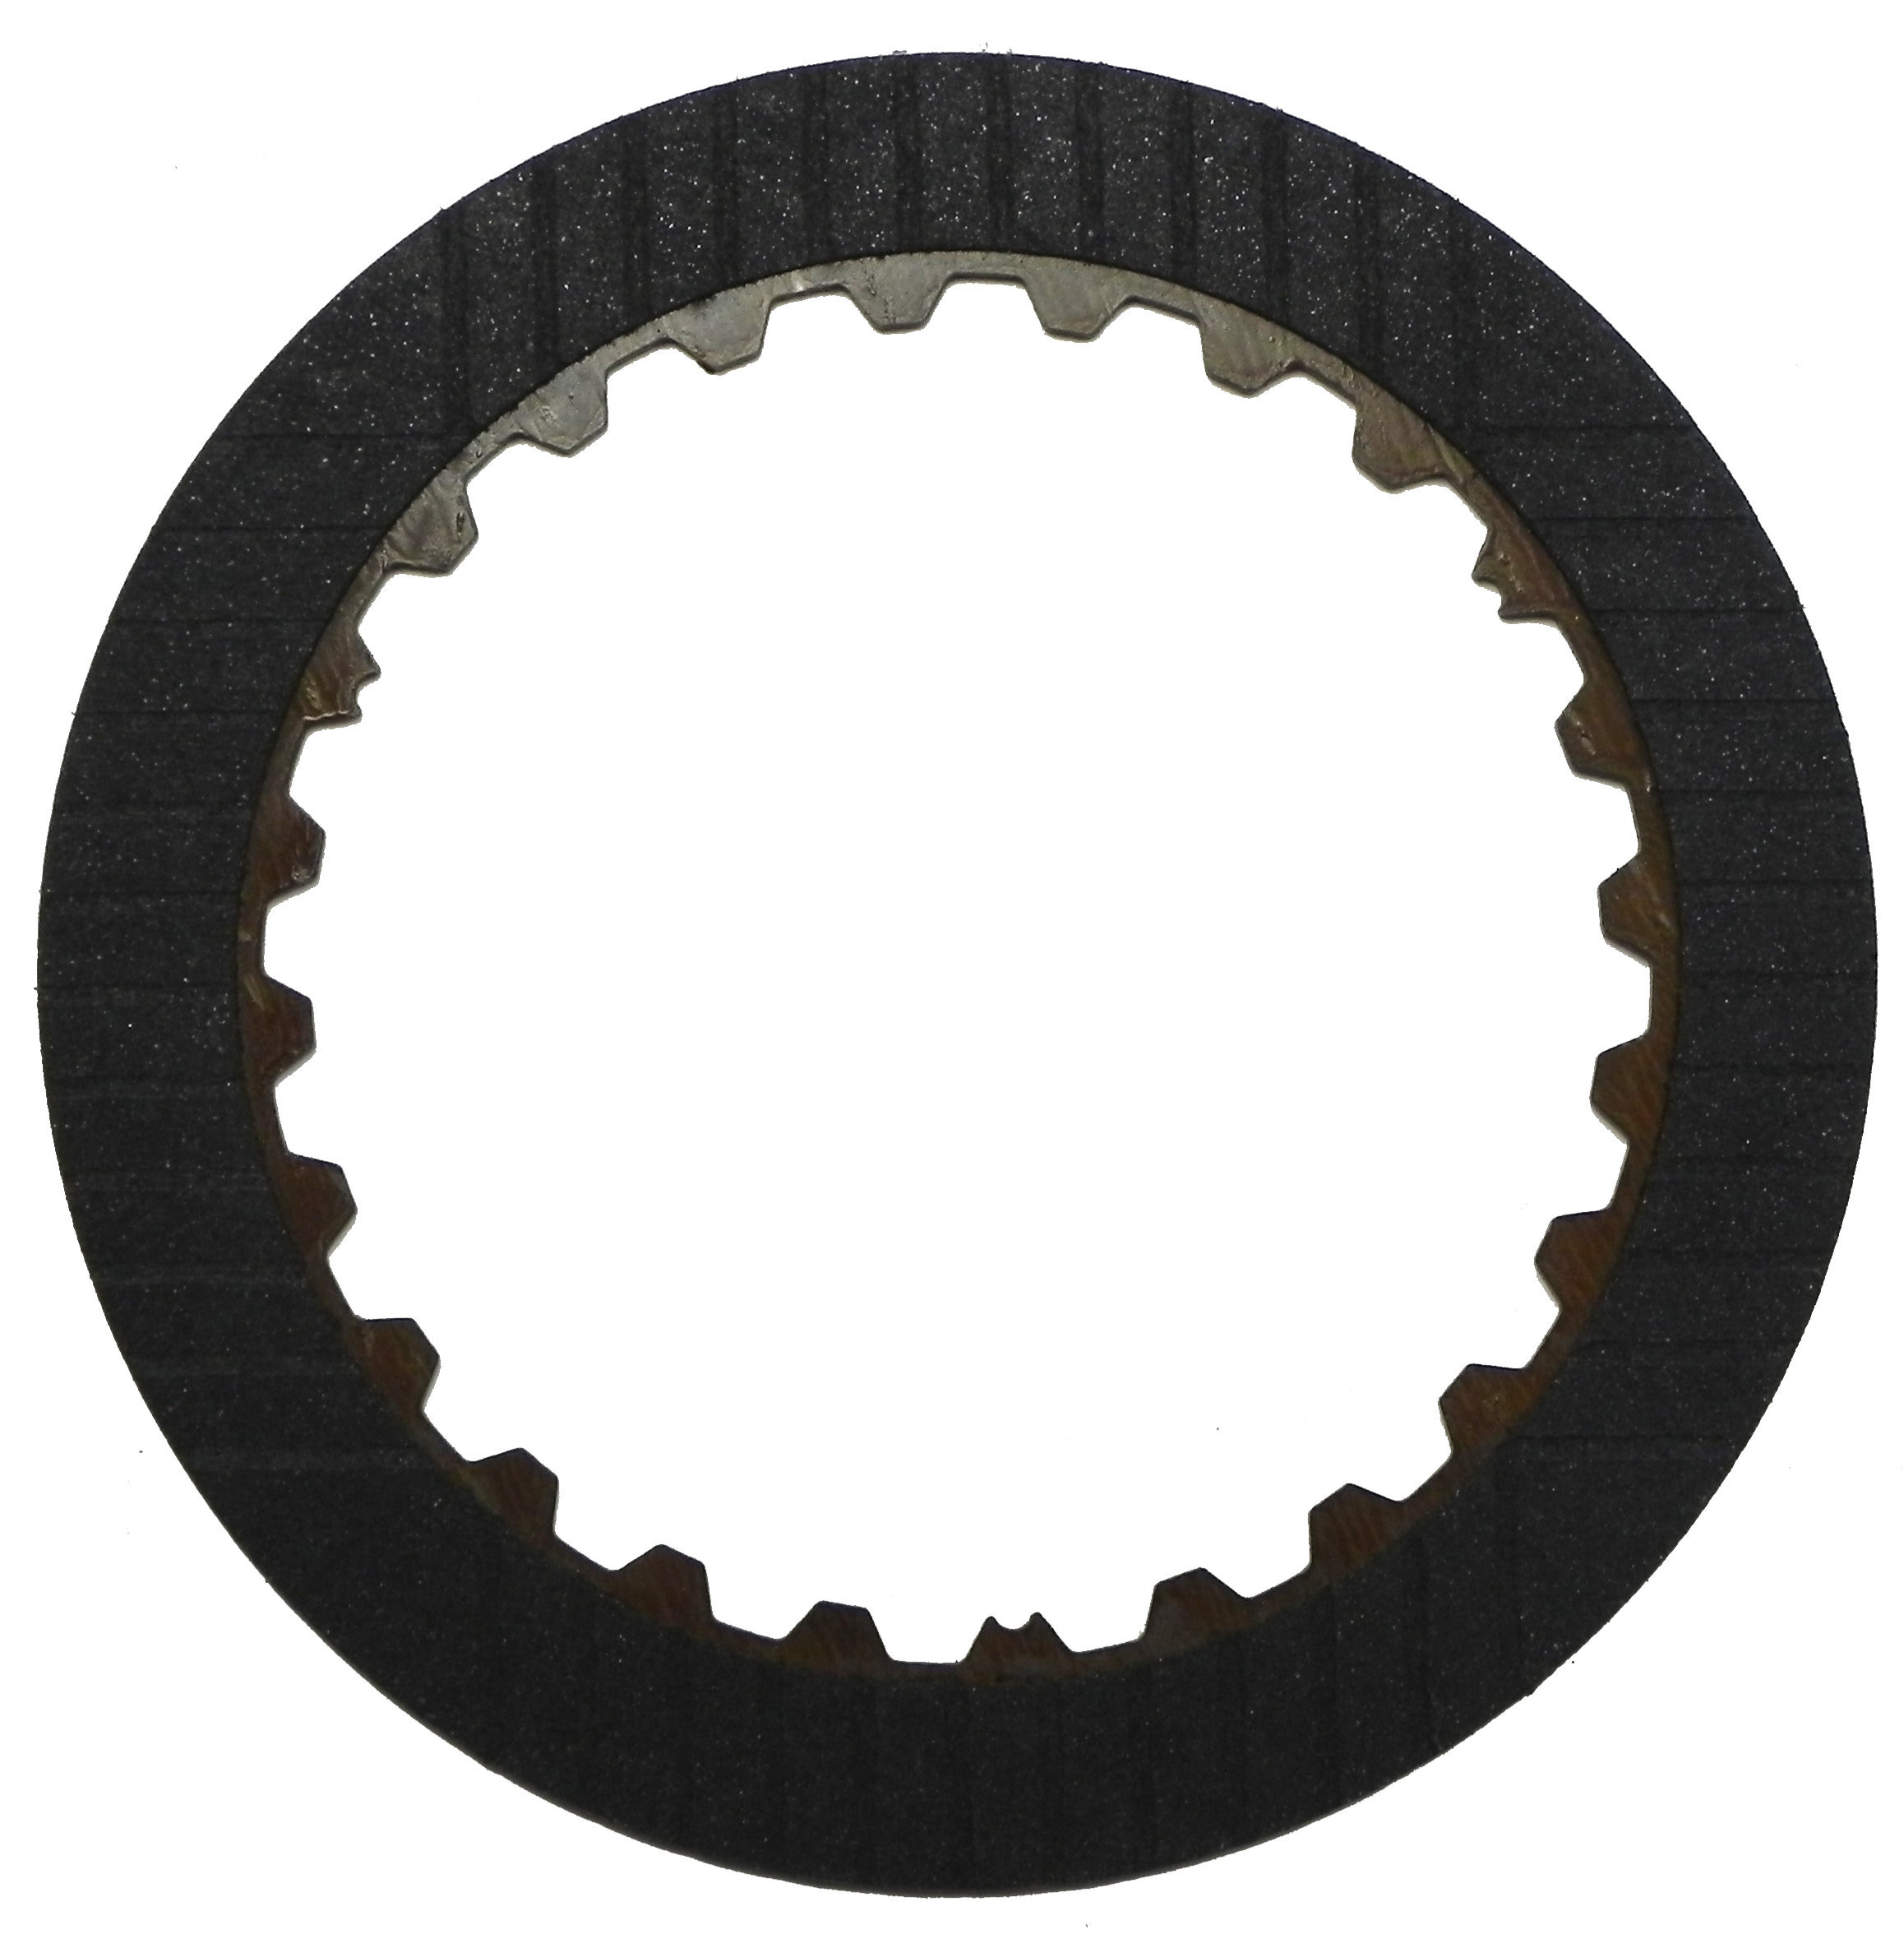 R572630 | 1997-2006 Friction Clutch Plate High Energy K3 Clutch Single Sided, ID Spline High Energy